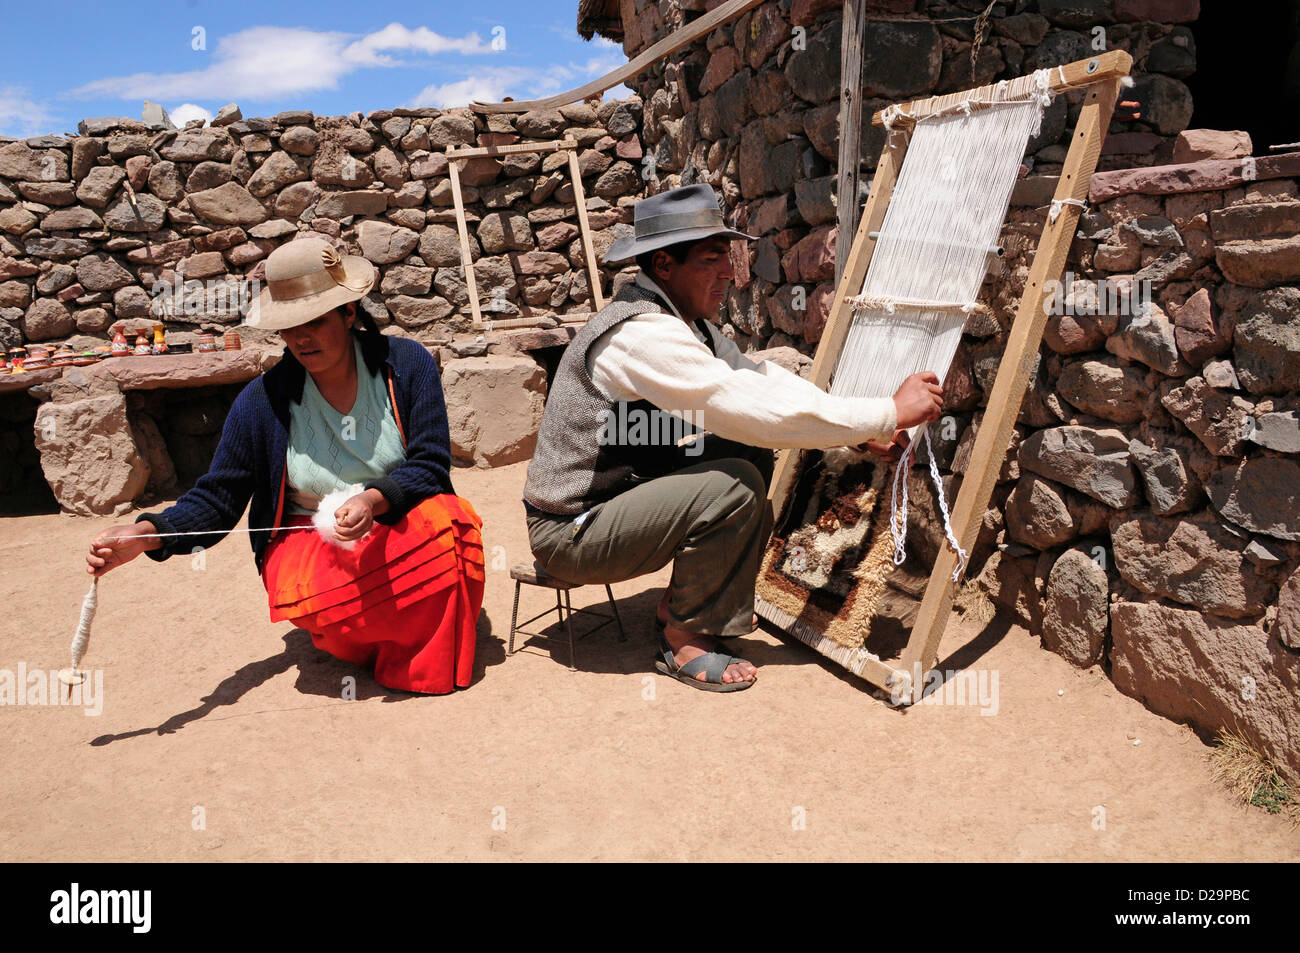 Man And Woman Weaving, Peru - Stock Image